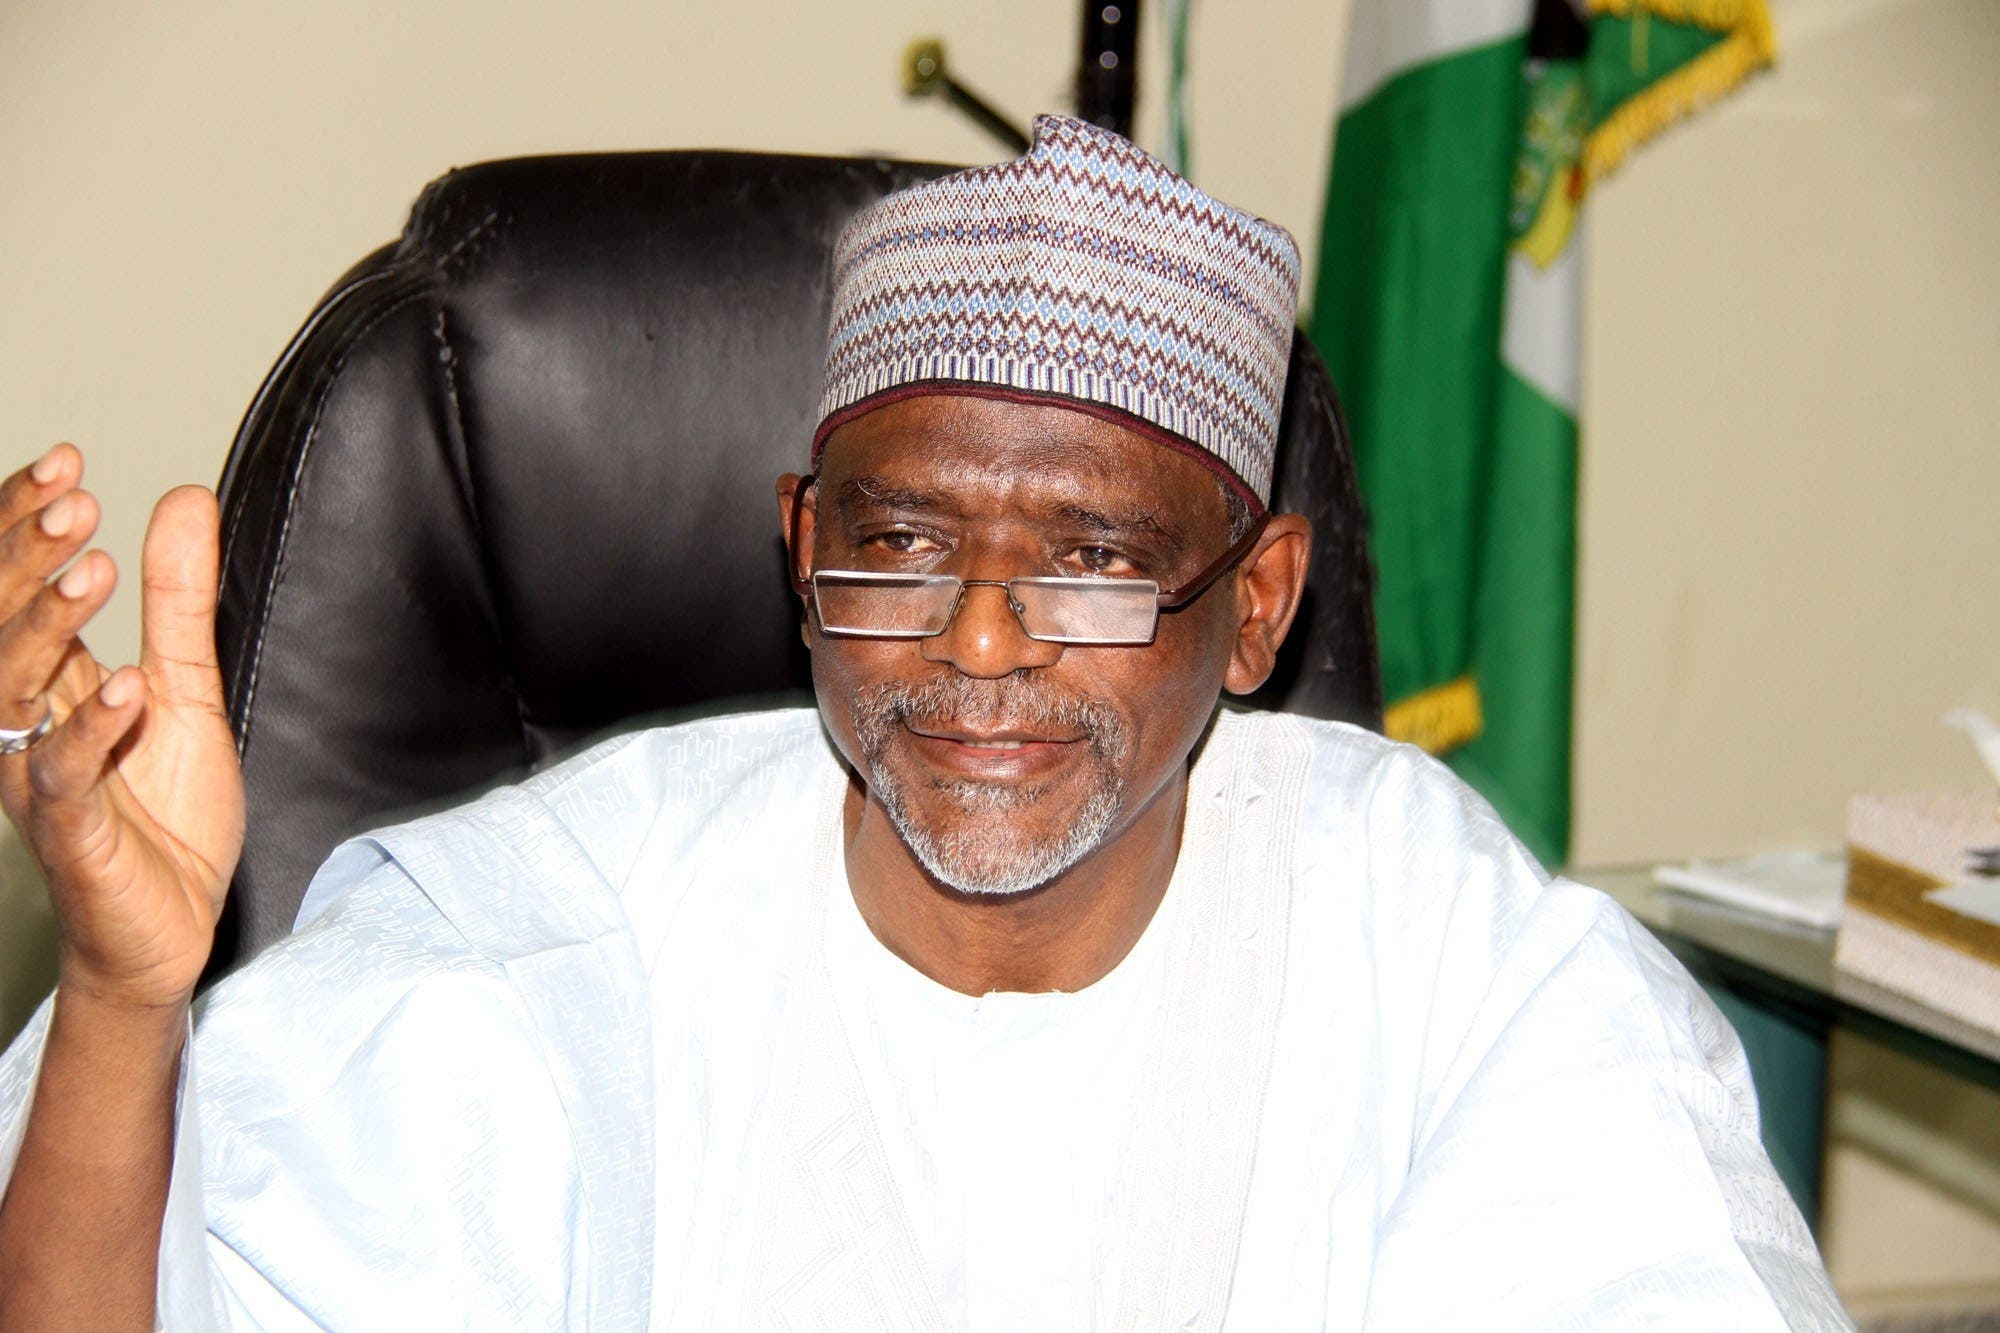 Adamu seeks protection of schools, release of students, teachers in captivity